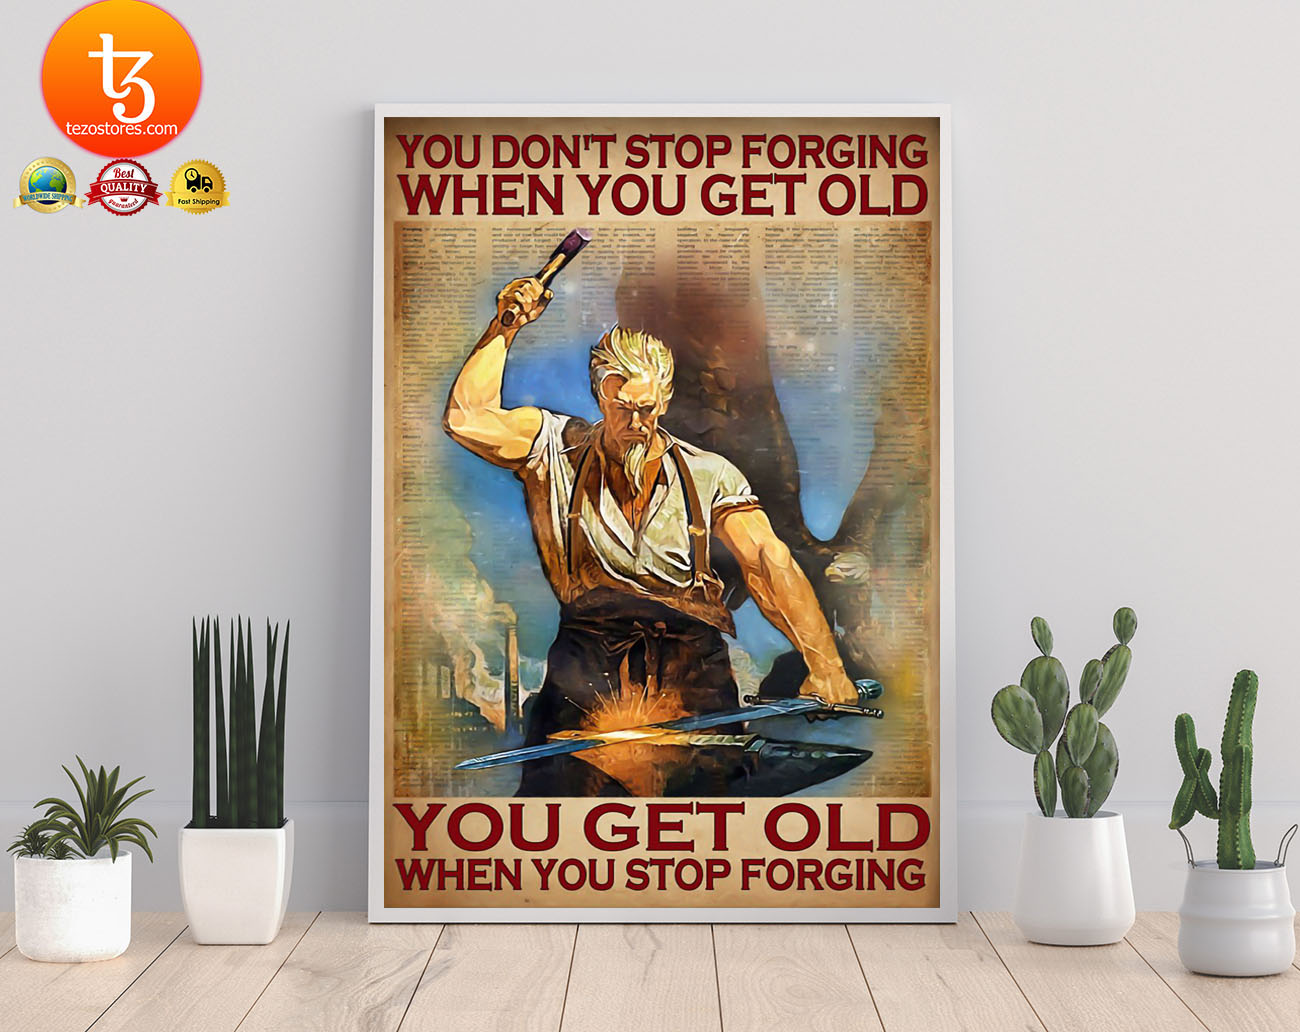 You don't stop forging when you get old poster 21